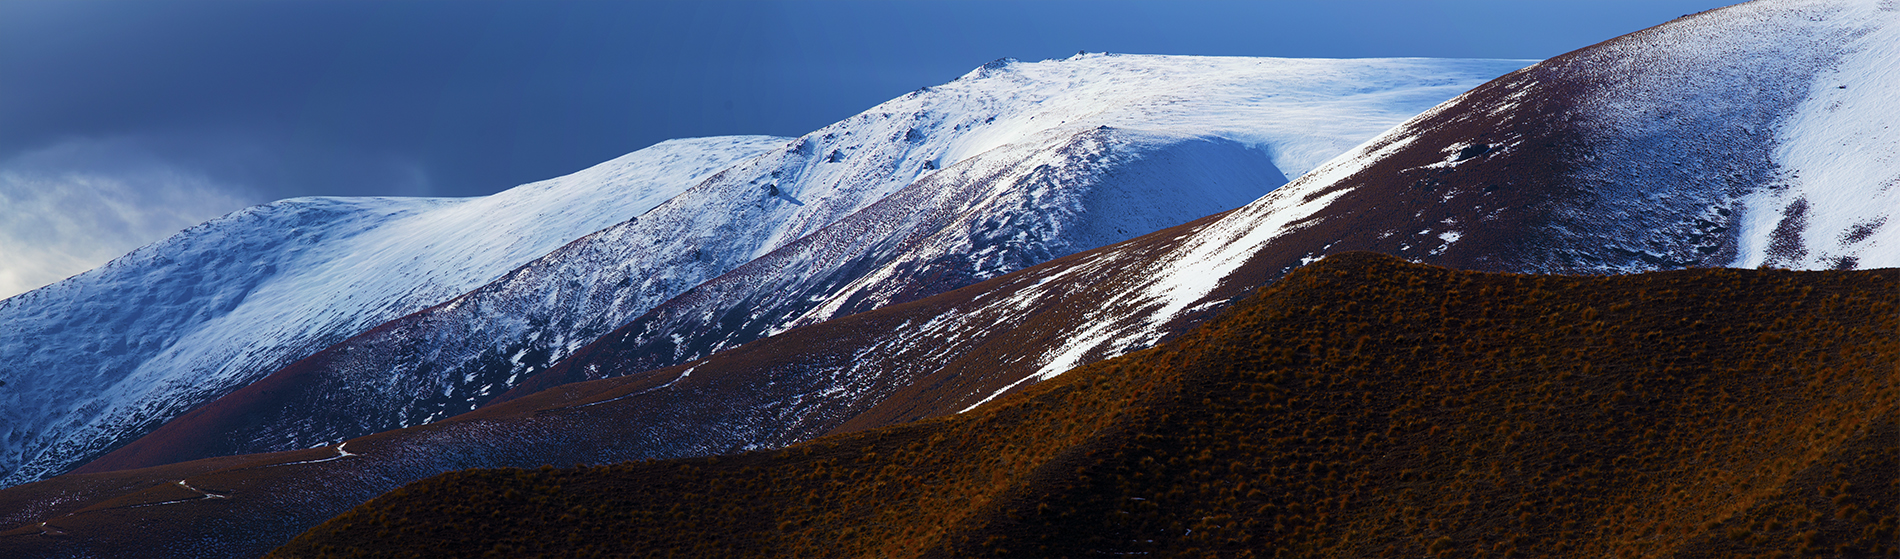 Alluring Lindis Lindis Pass New Zealand. A Limited Edition Fine Art Landscape Photograph by Richard Hume